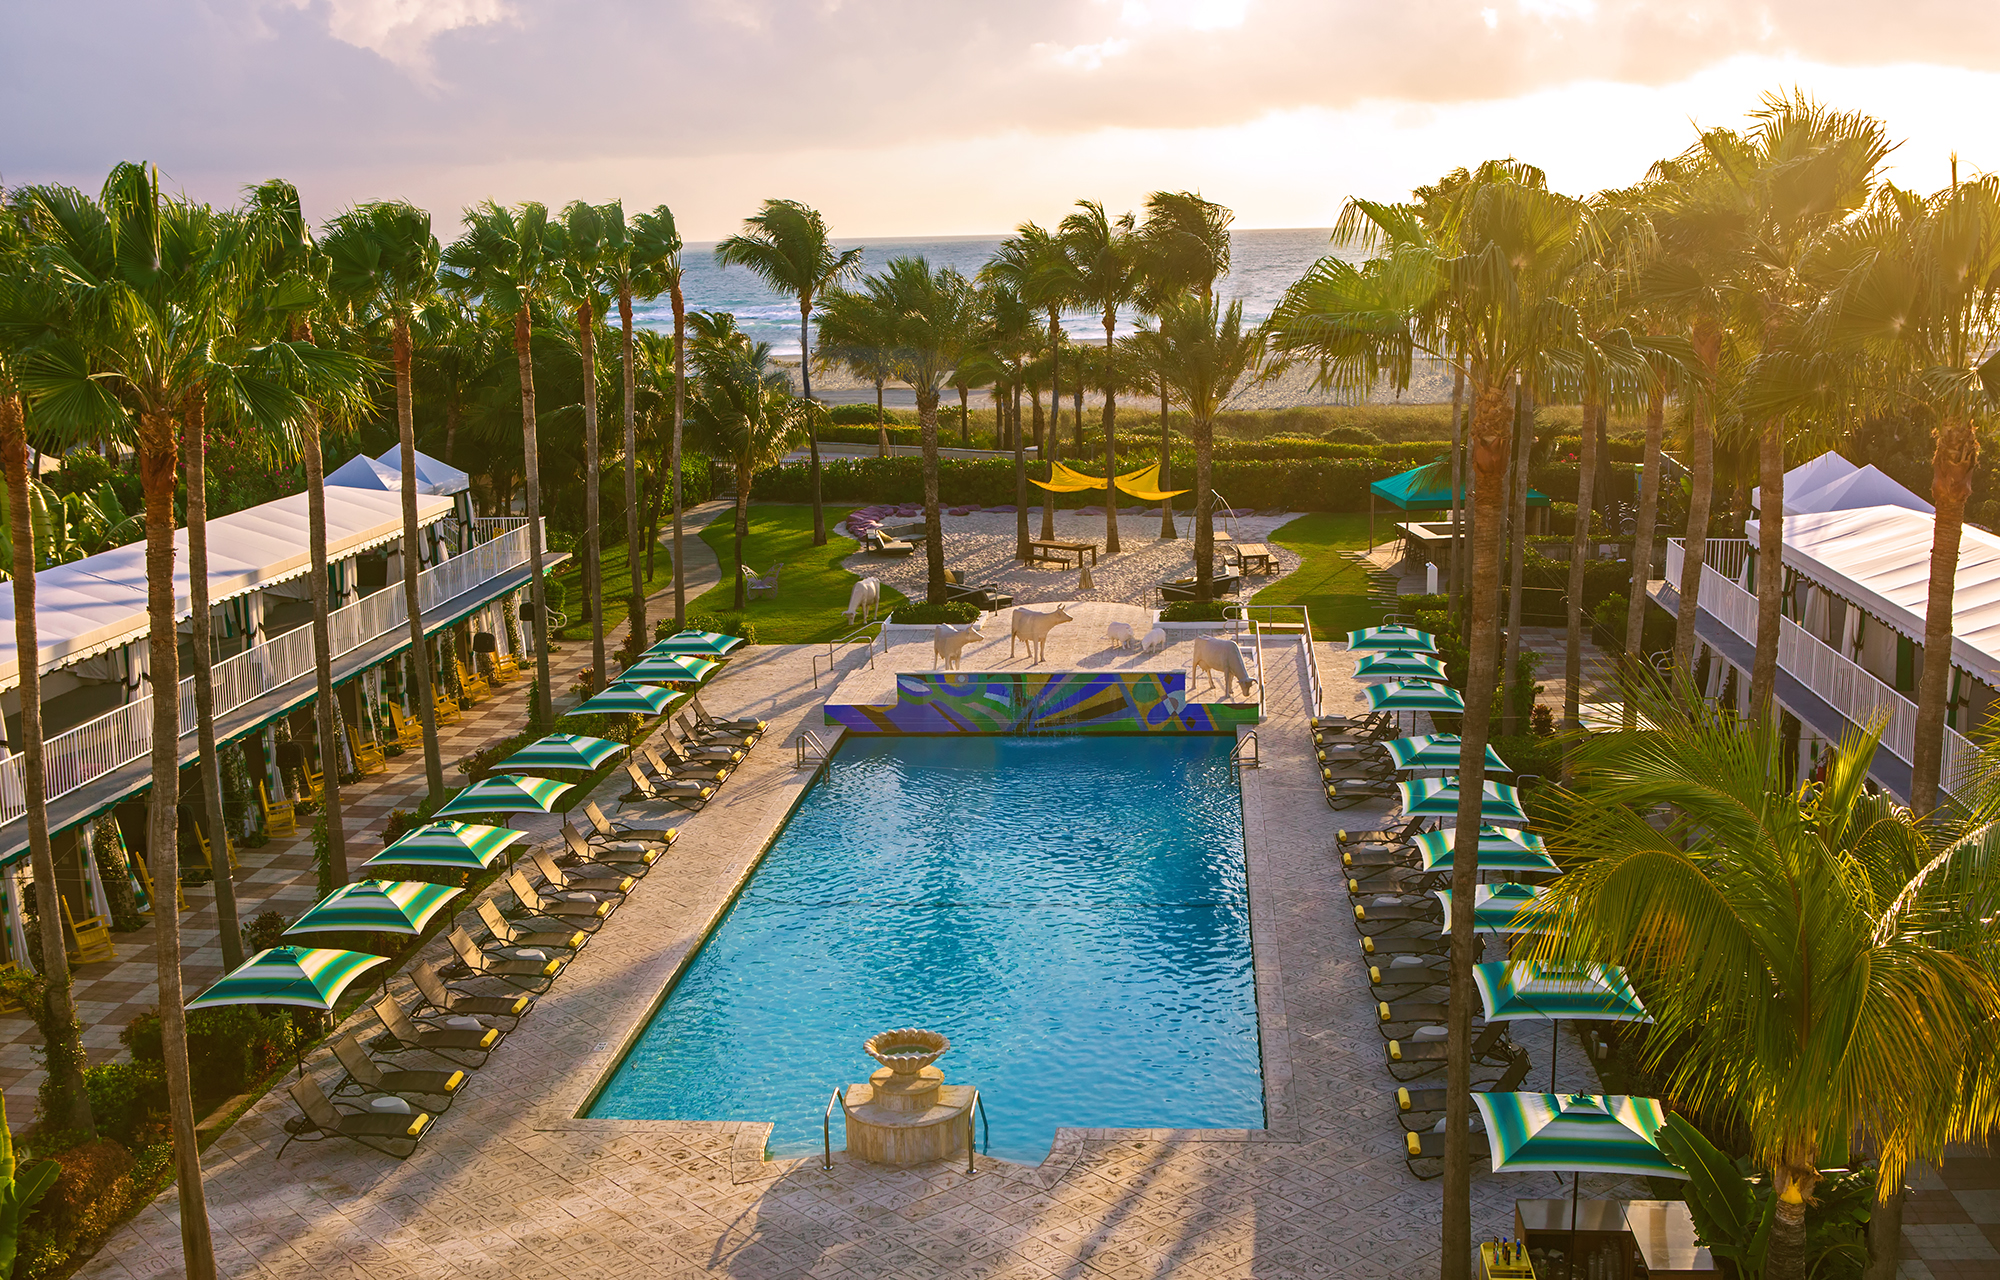 Enjoy One Last Fling In Miami, South Beach For Your